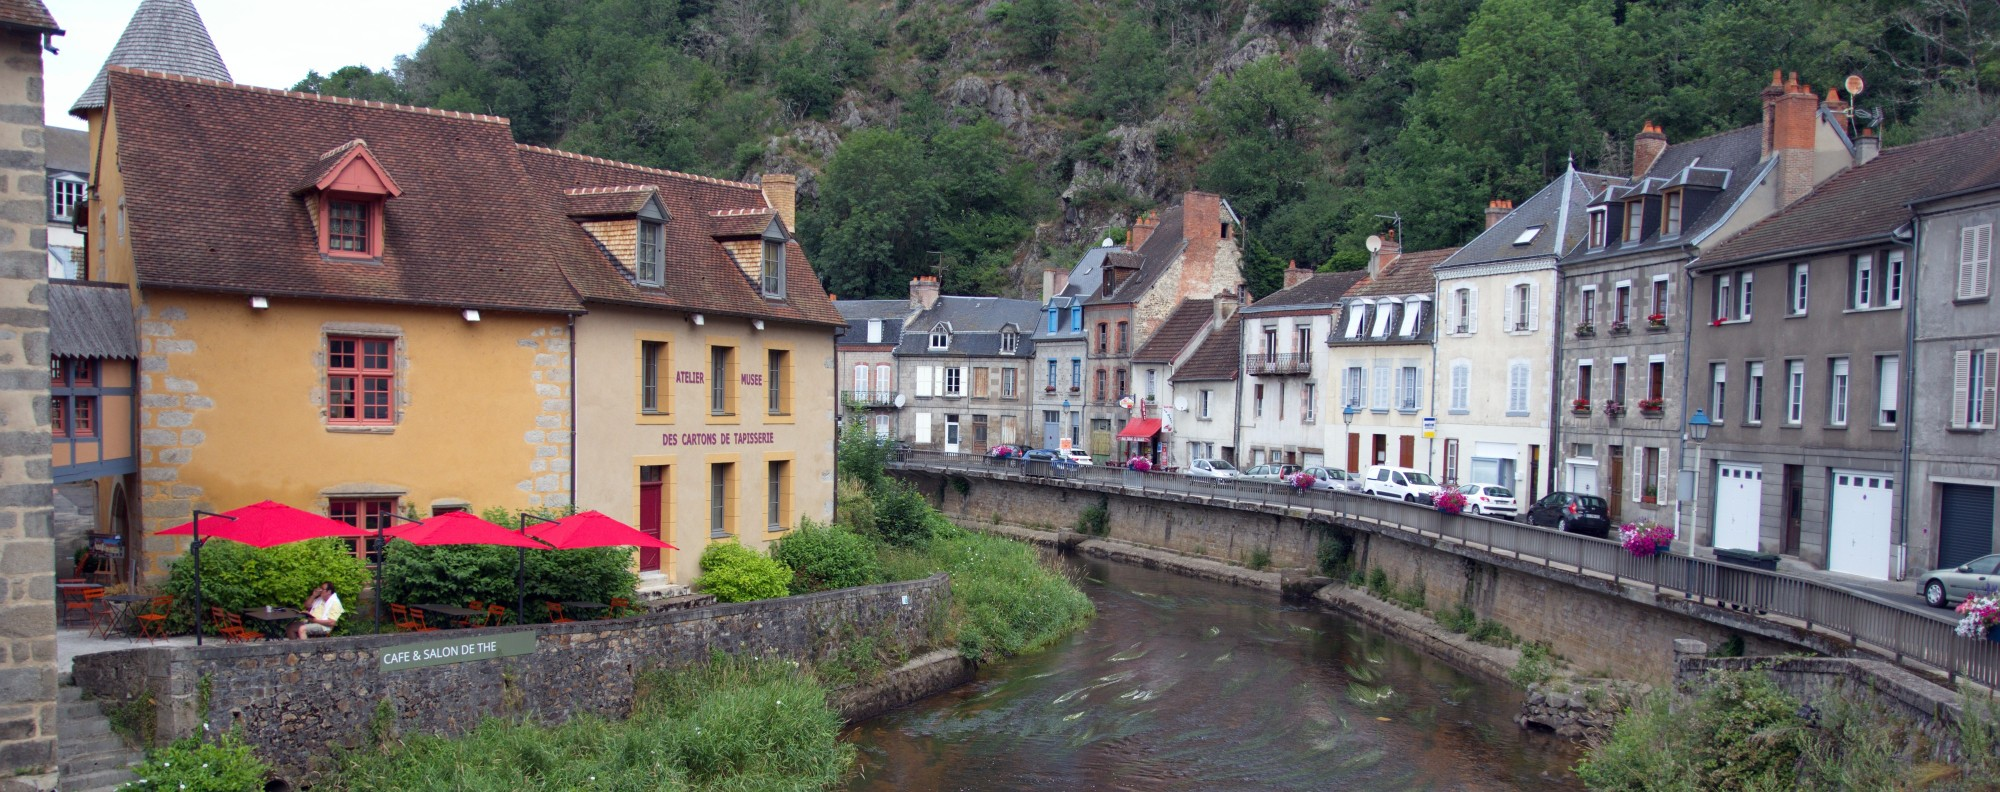 The Cartoon Museum on the bank of the River Creuse. Picture: Keith Mundy